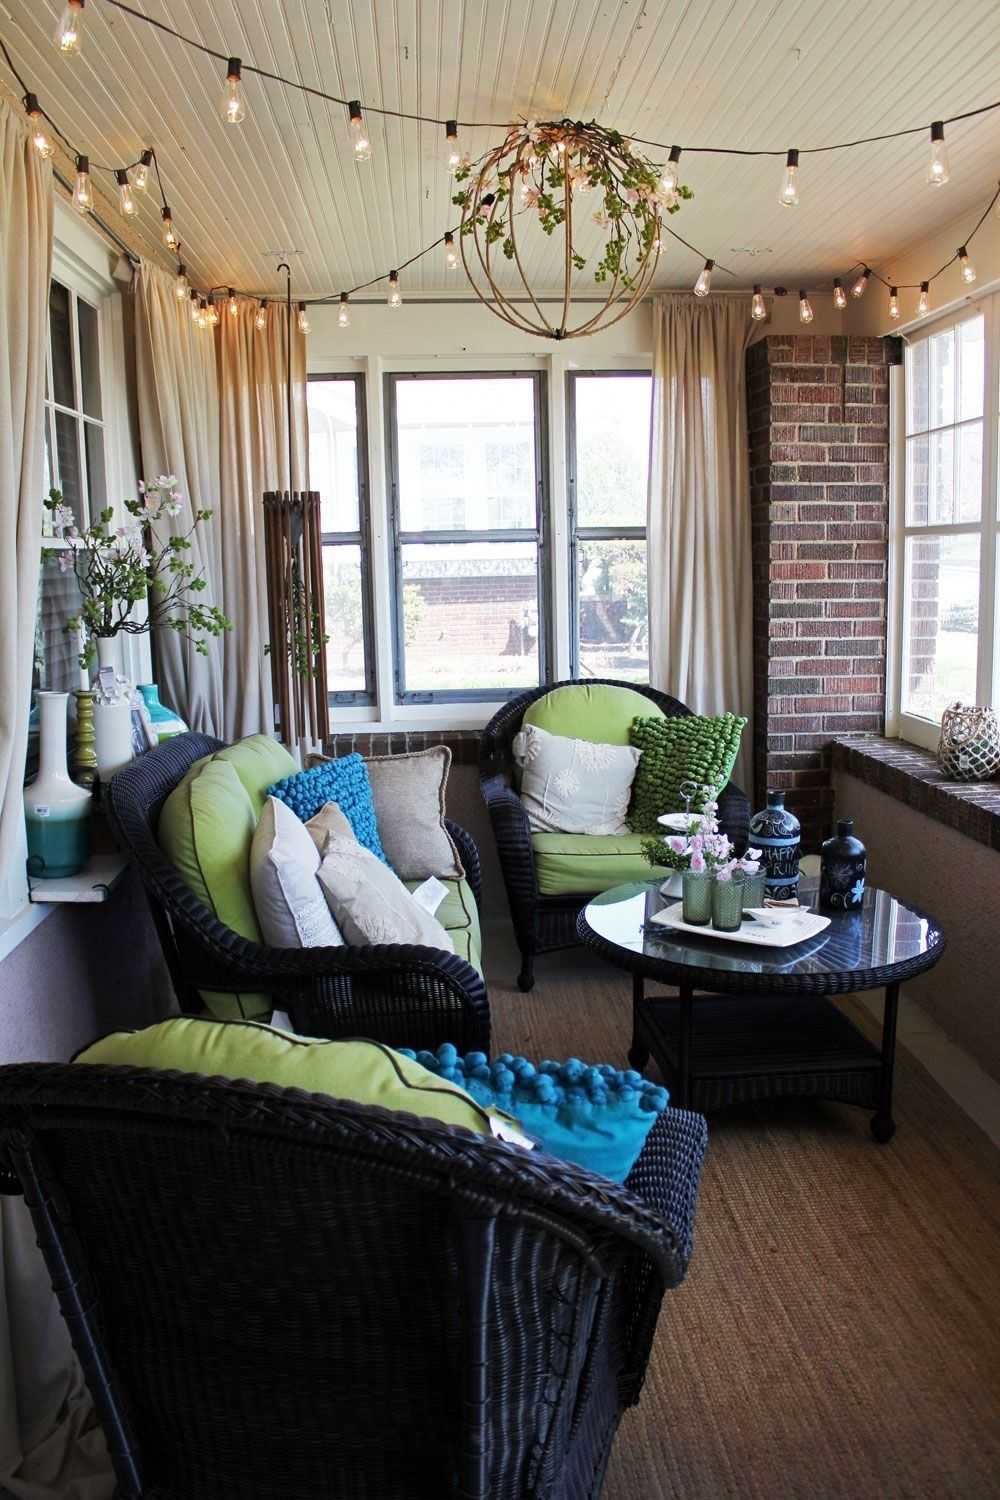 25 Insanely Beautiful Small Enclosed Porch Decorating Ideas BW25zu